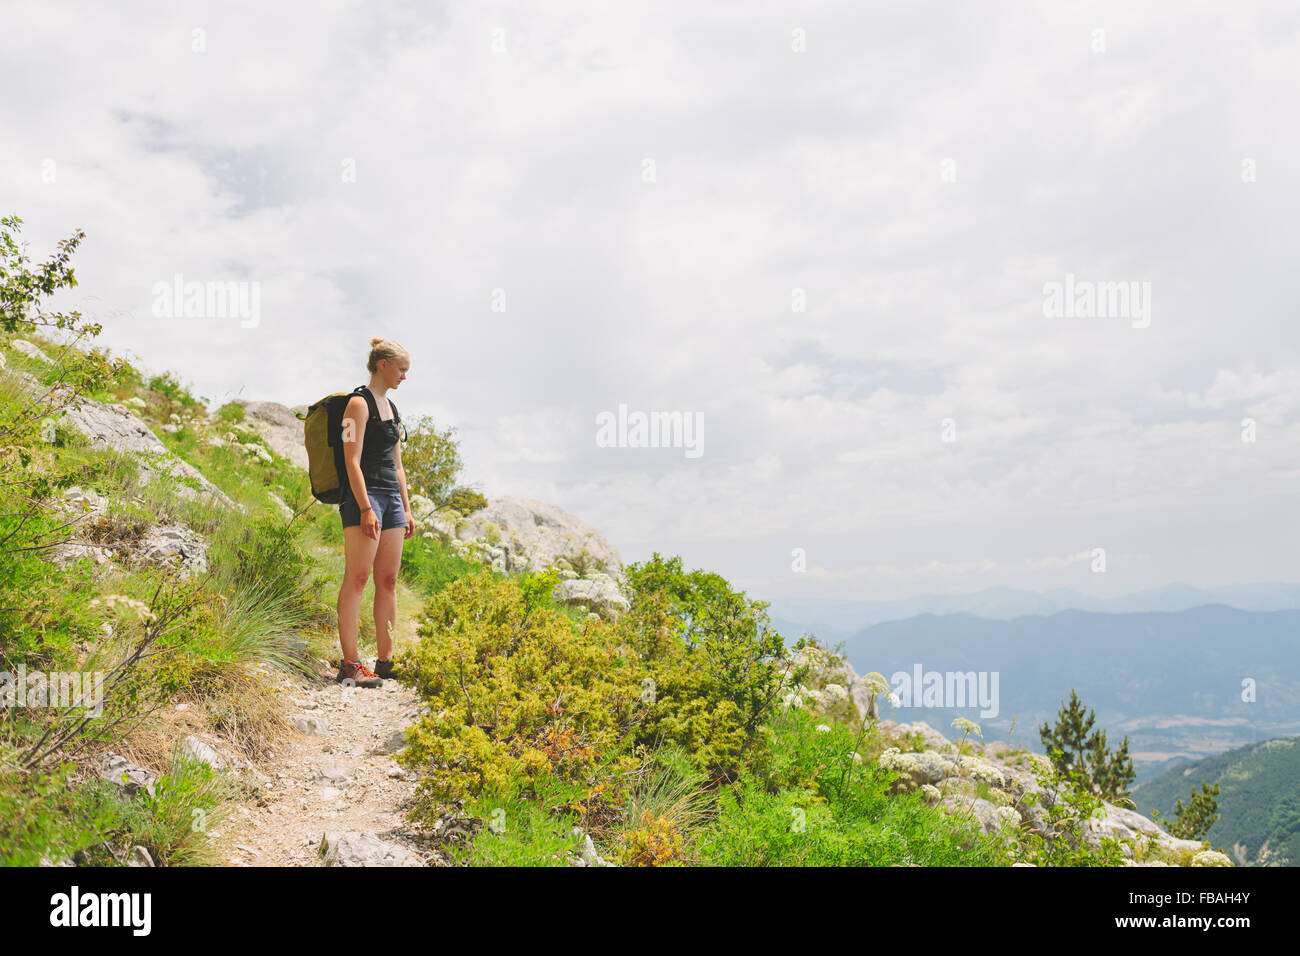 France, Pelleautier, Ceuse, Woman standing on hiking path on mountain side - Stock Image